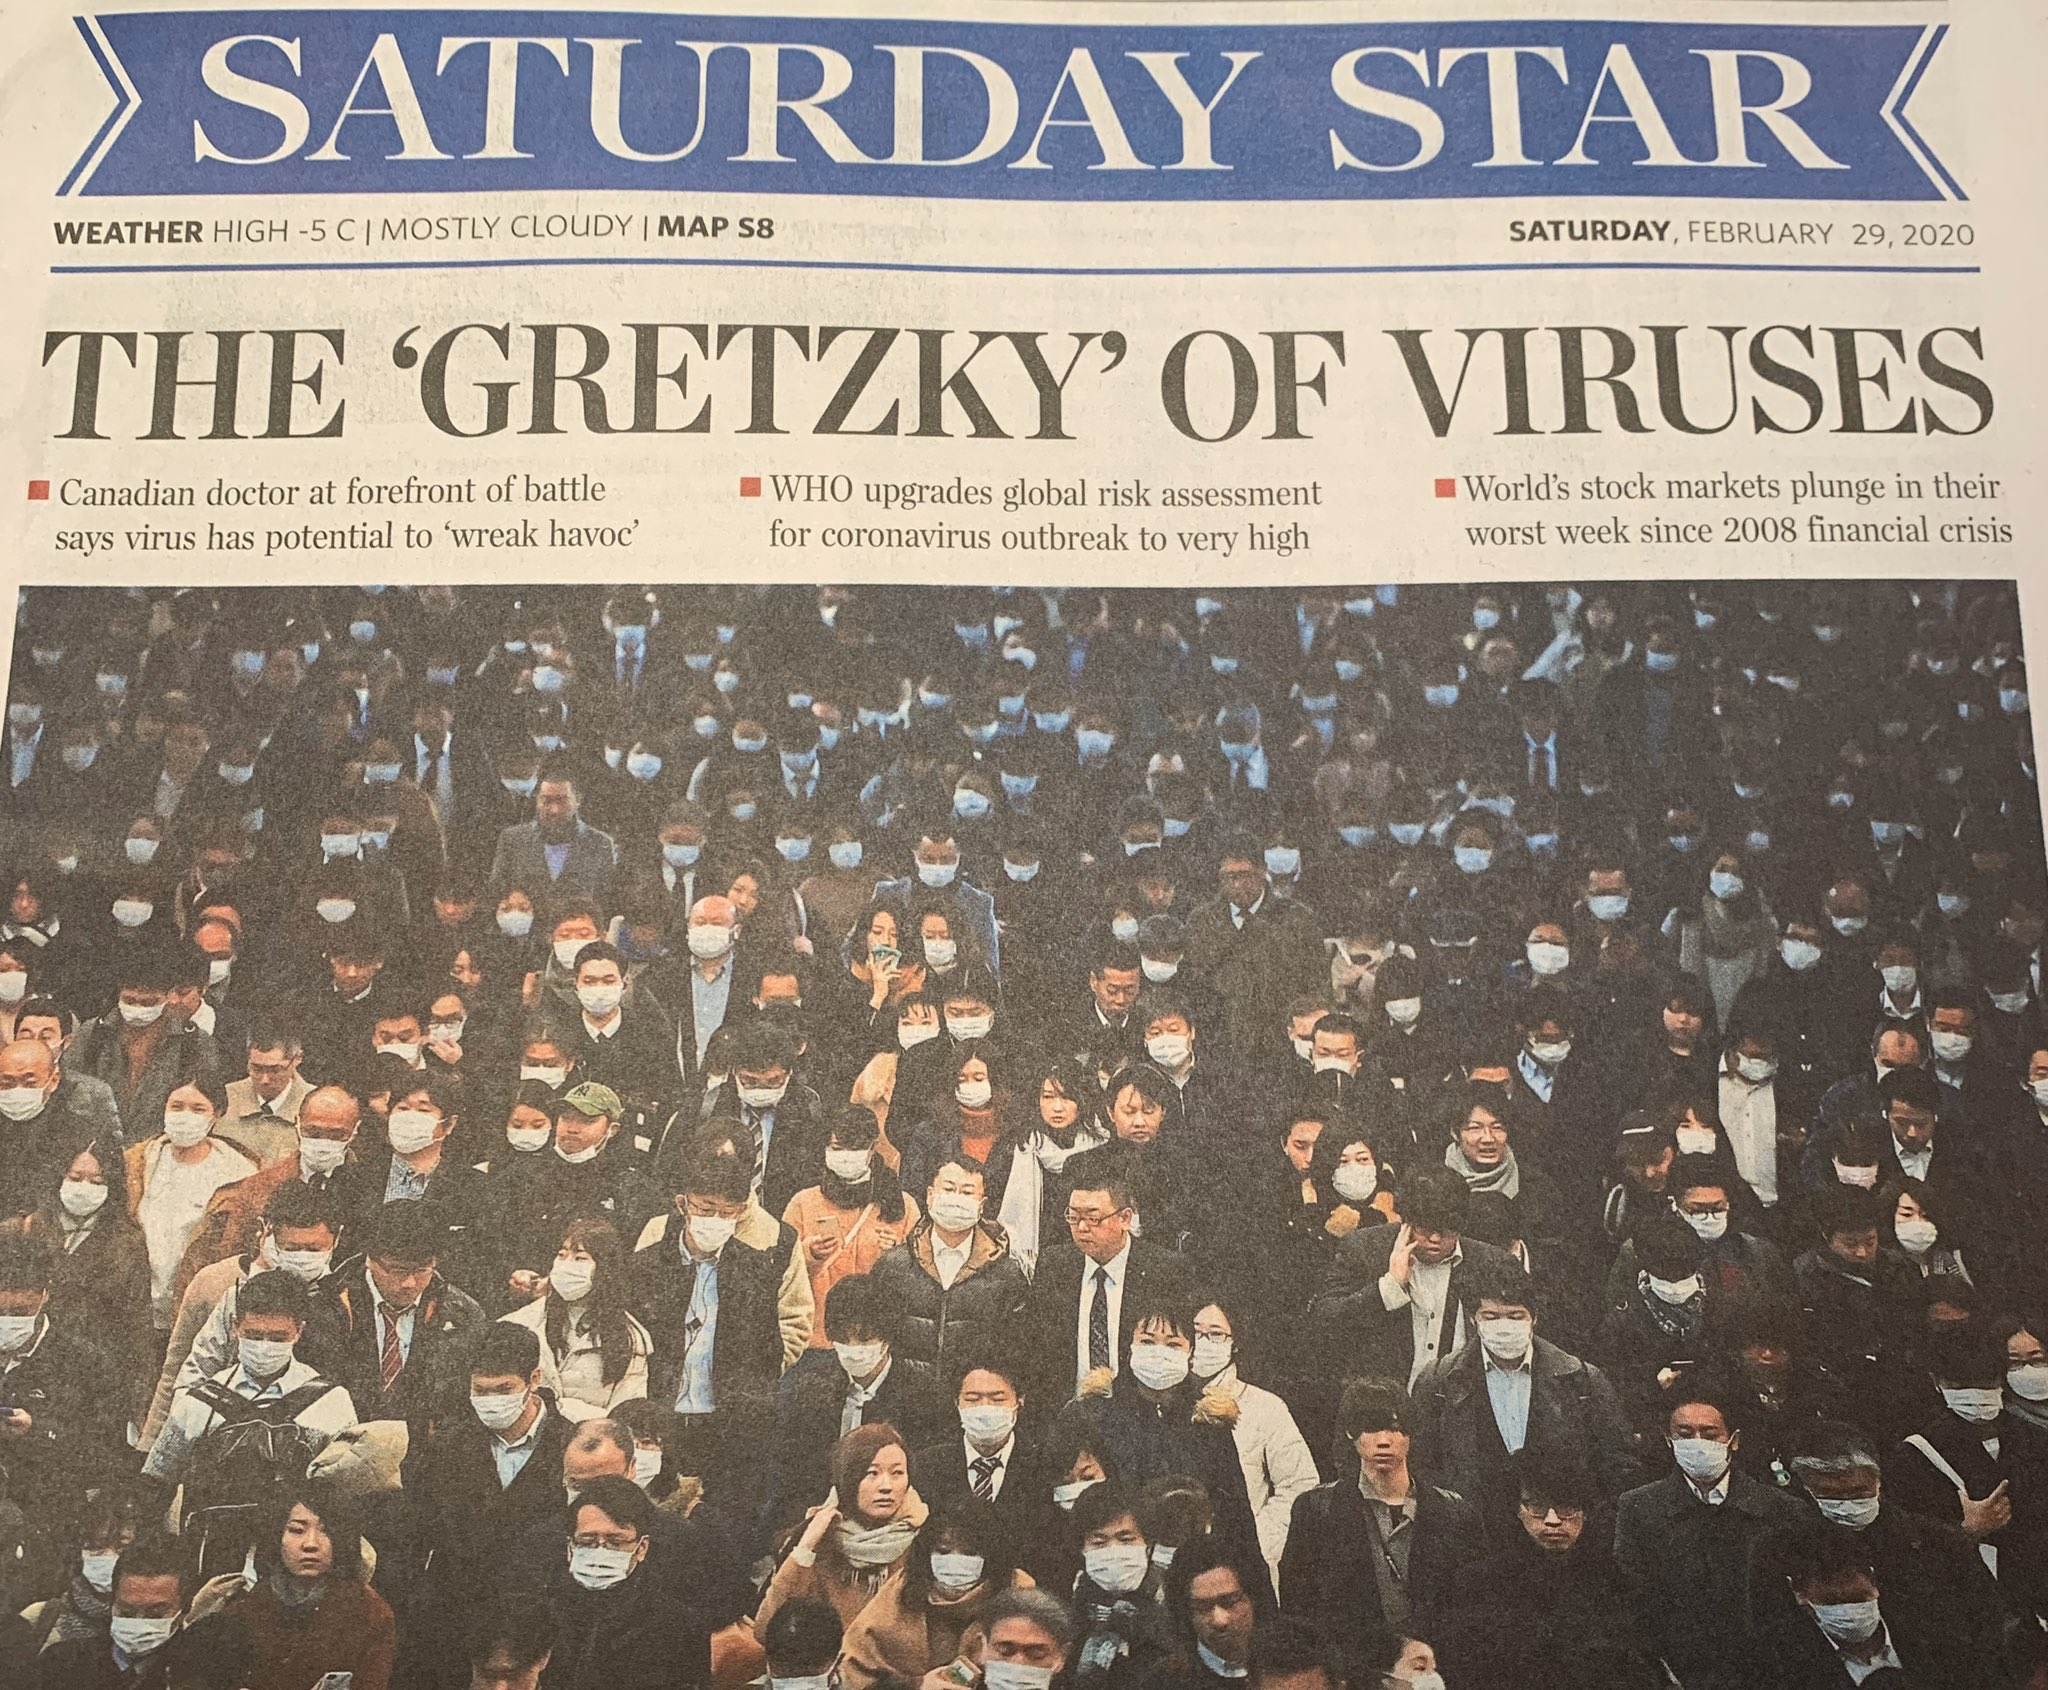 Headline in the Toronto Star on February 29th, 2020: The Wayne Gretzky of Viruses